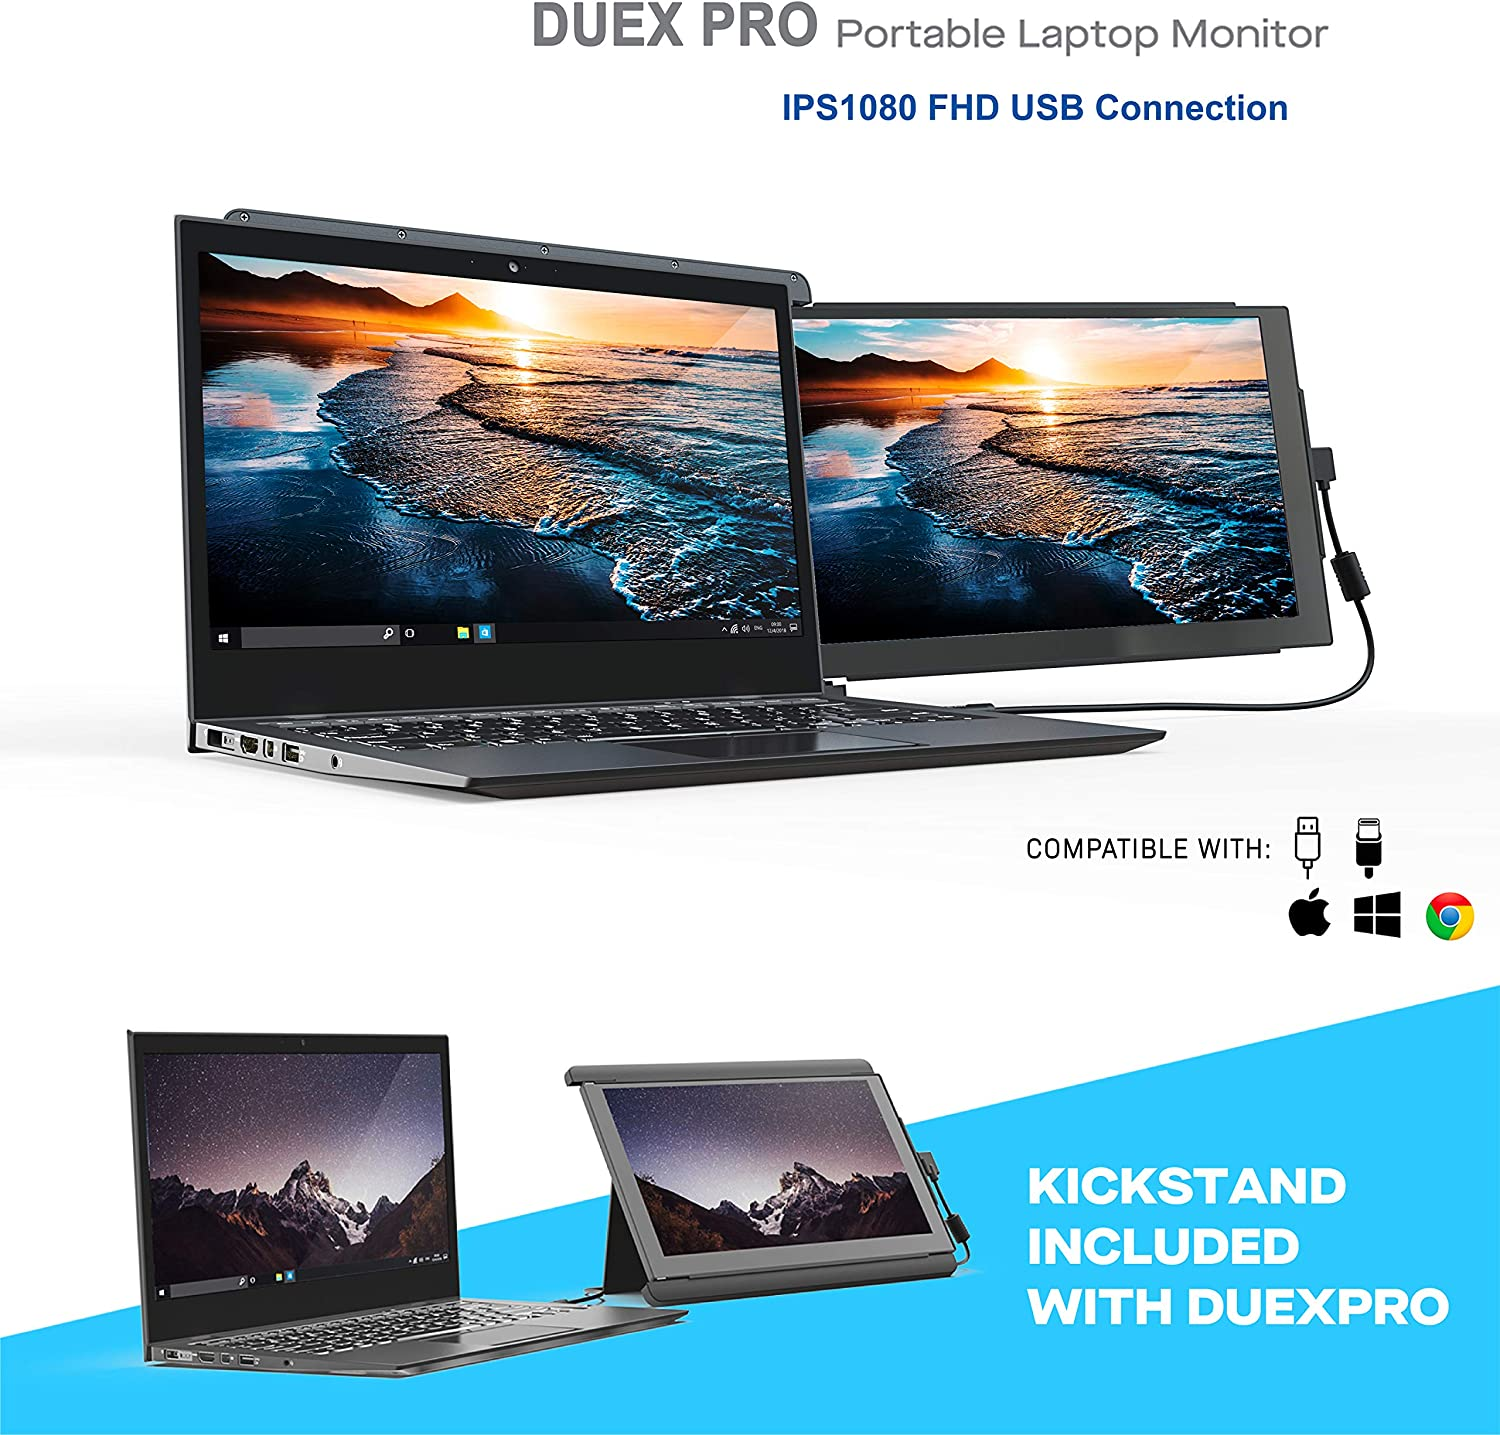 Portable Monitor -Duex Pro Upgraded 2.0 with Kickstand Combo, 12.5 Inch Full HD IPS Screen for laptops, USB C/Type -A Lightweight Dual Laptop Monitor, Brightness Adjustable Anti Glare Portable Screen